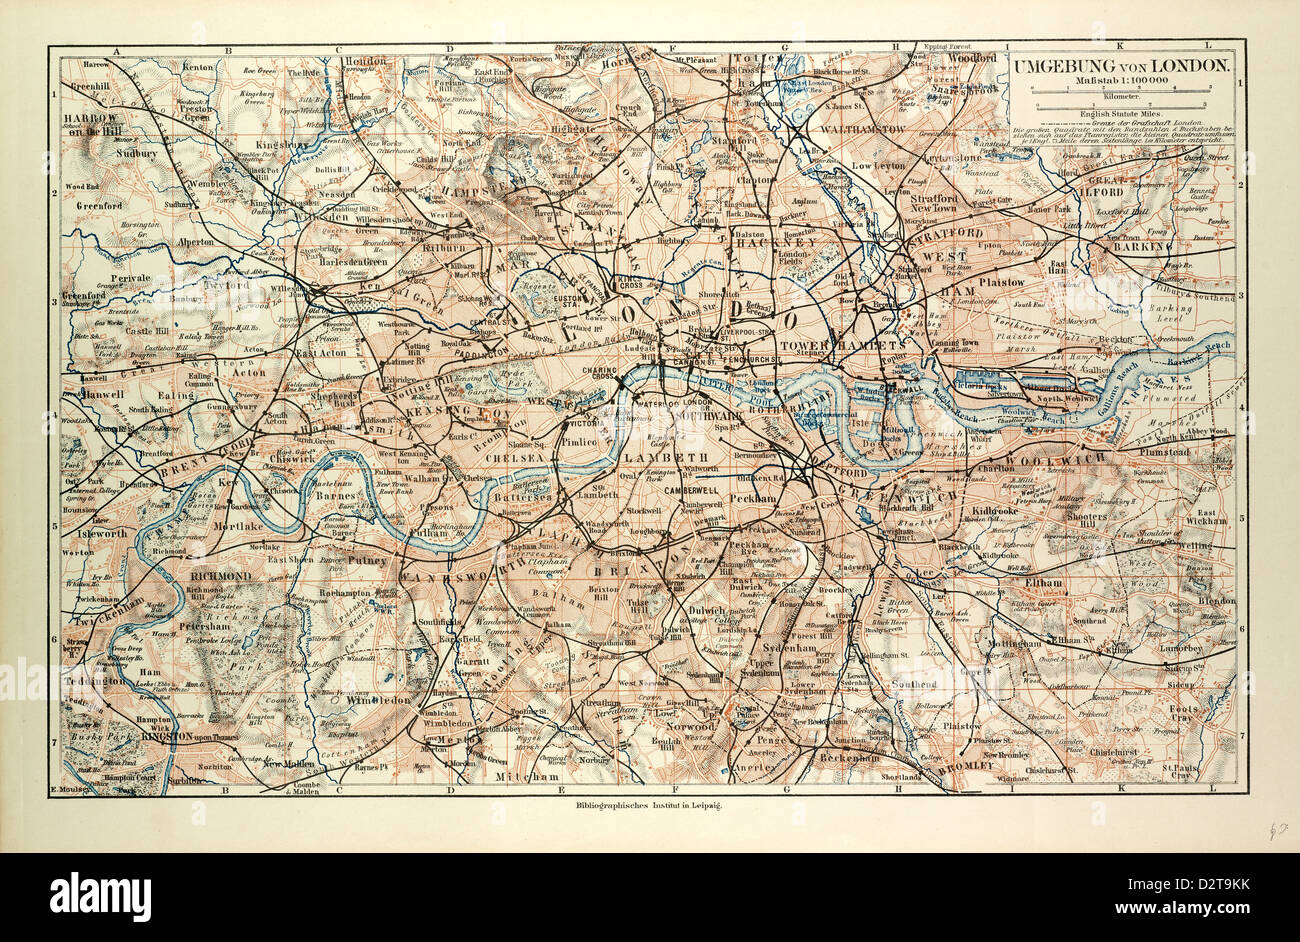 OLD MAP OF LONDON - Stock Image